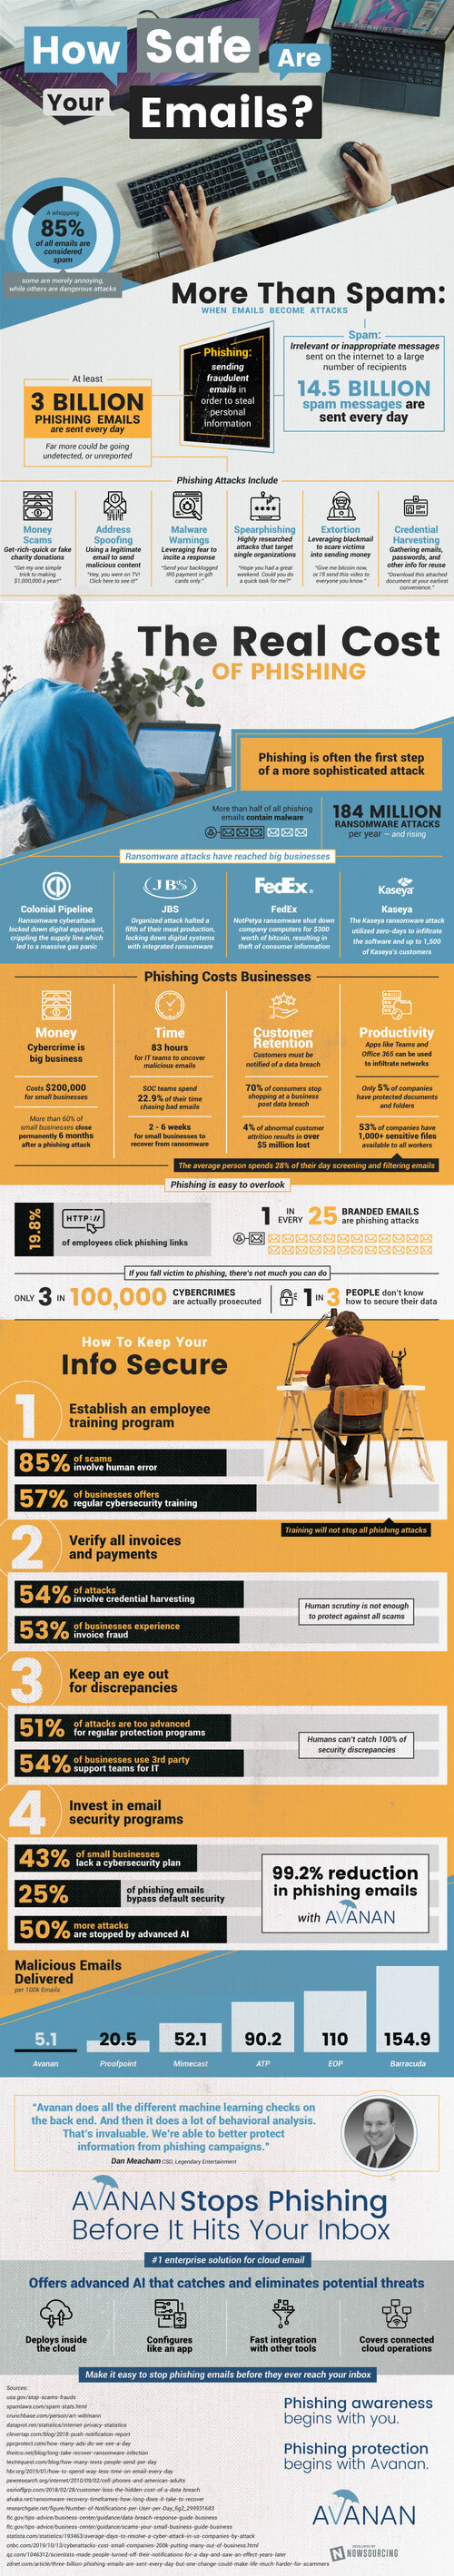 How Safe Are Your Emails? via Brian Wallace